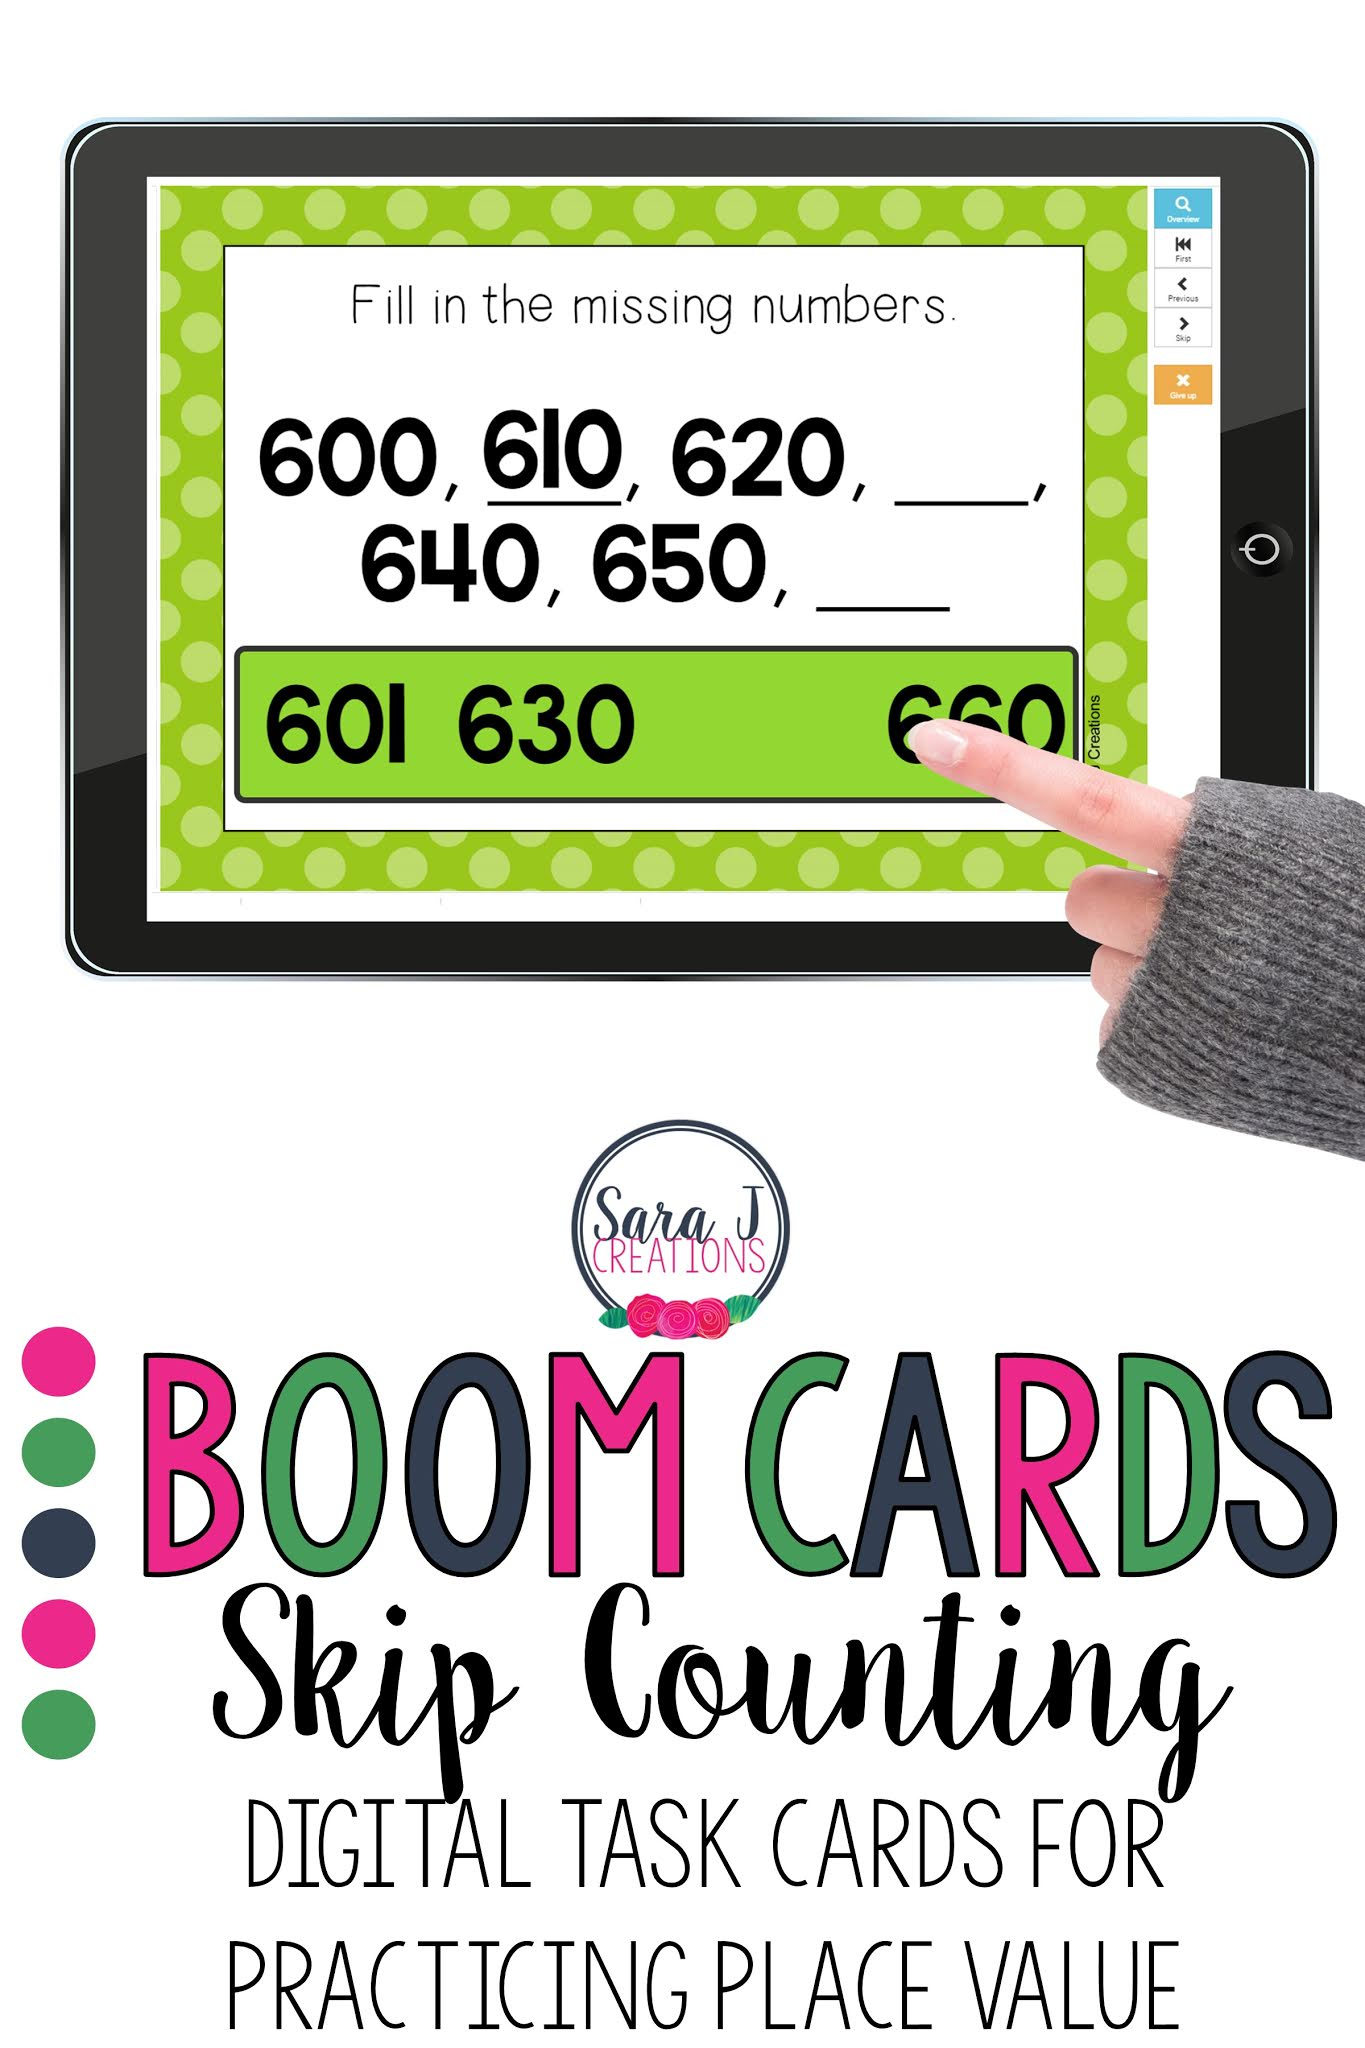 Practice skip counting with these Boom Cards - a fun, digital task card system that provides students with instant fun and instant feedback. Ideal for distance learning or in the classroom during math centers.